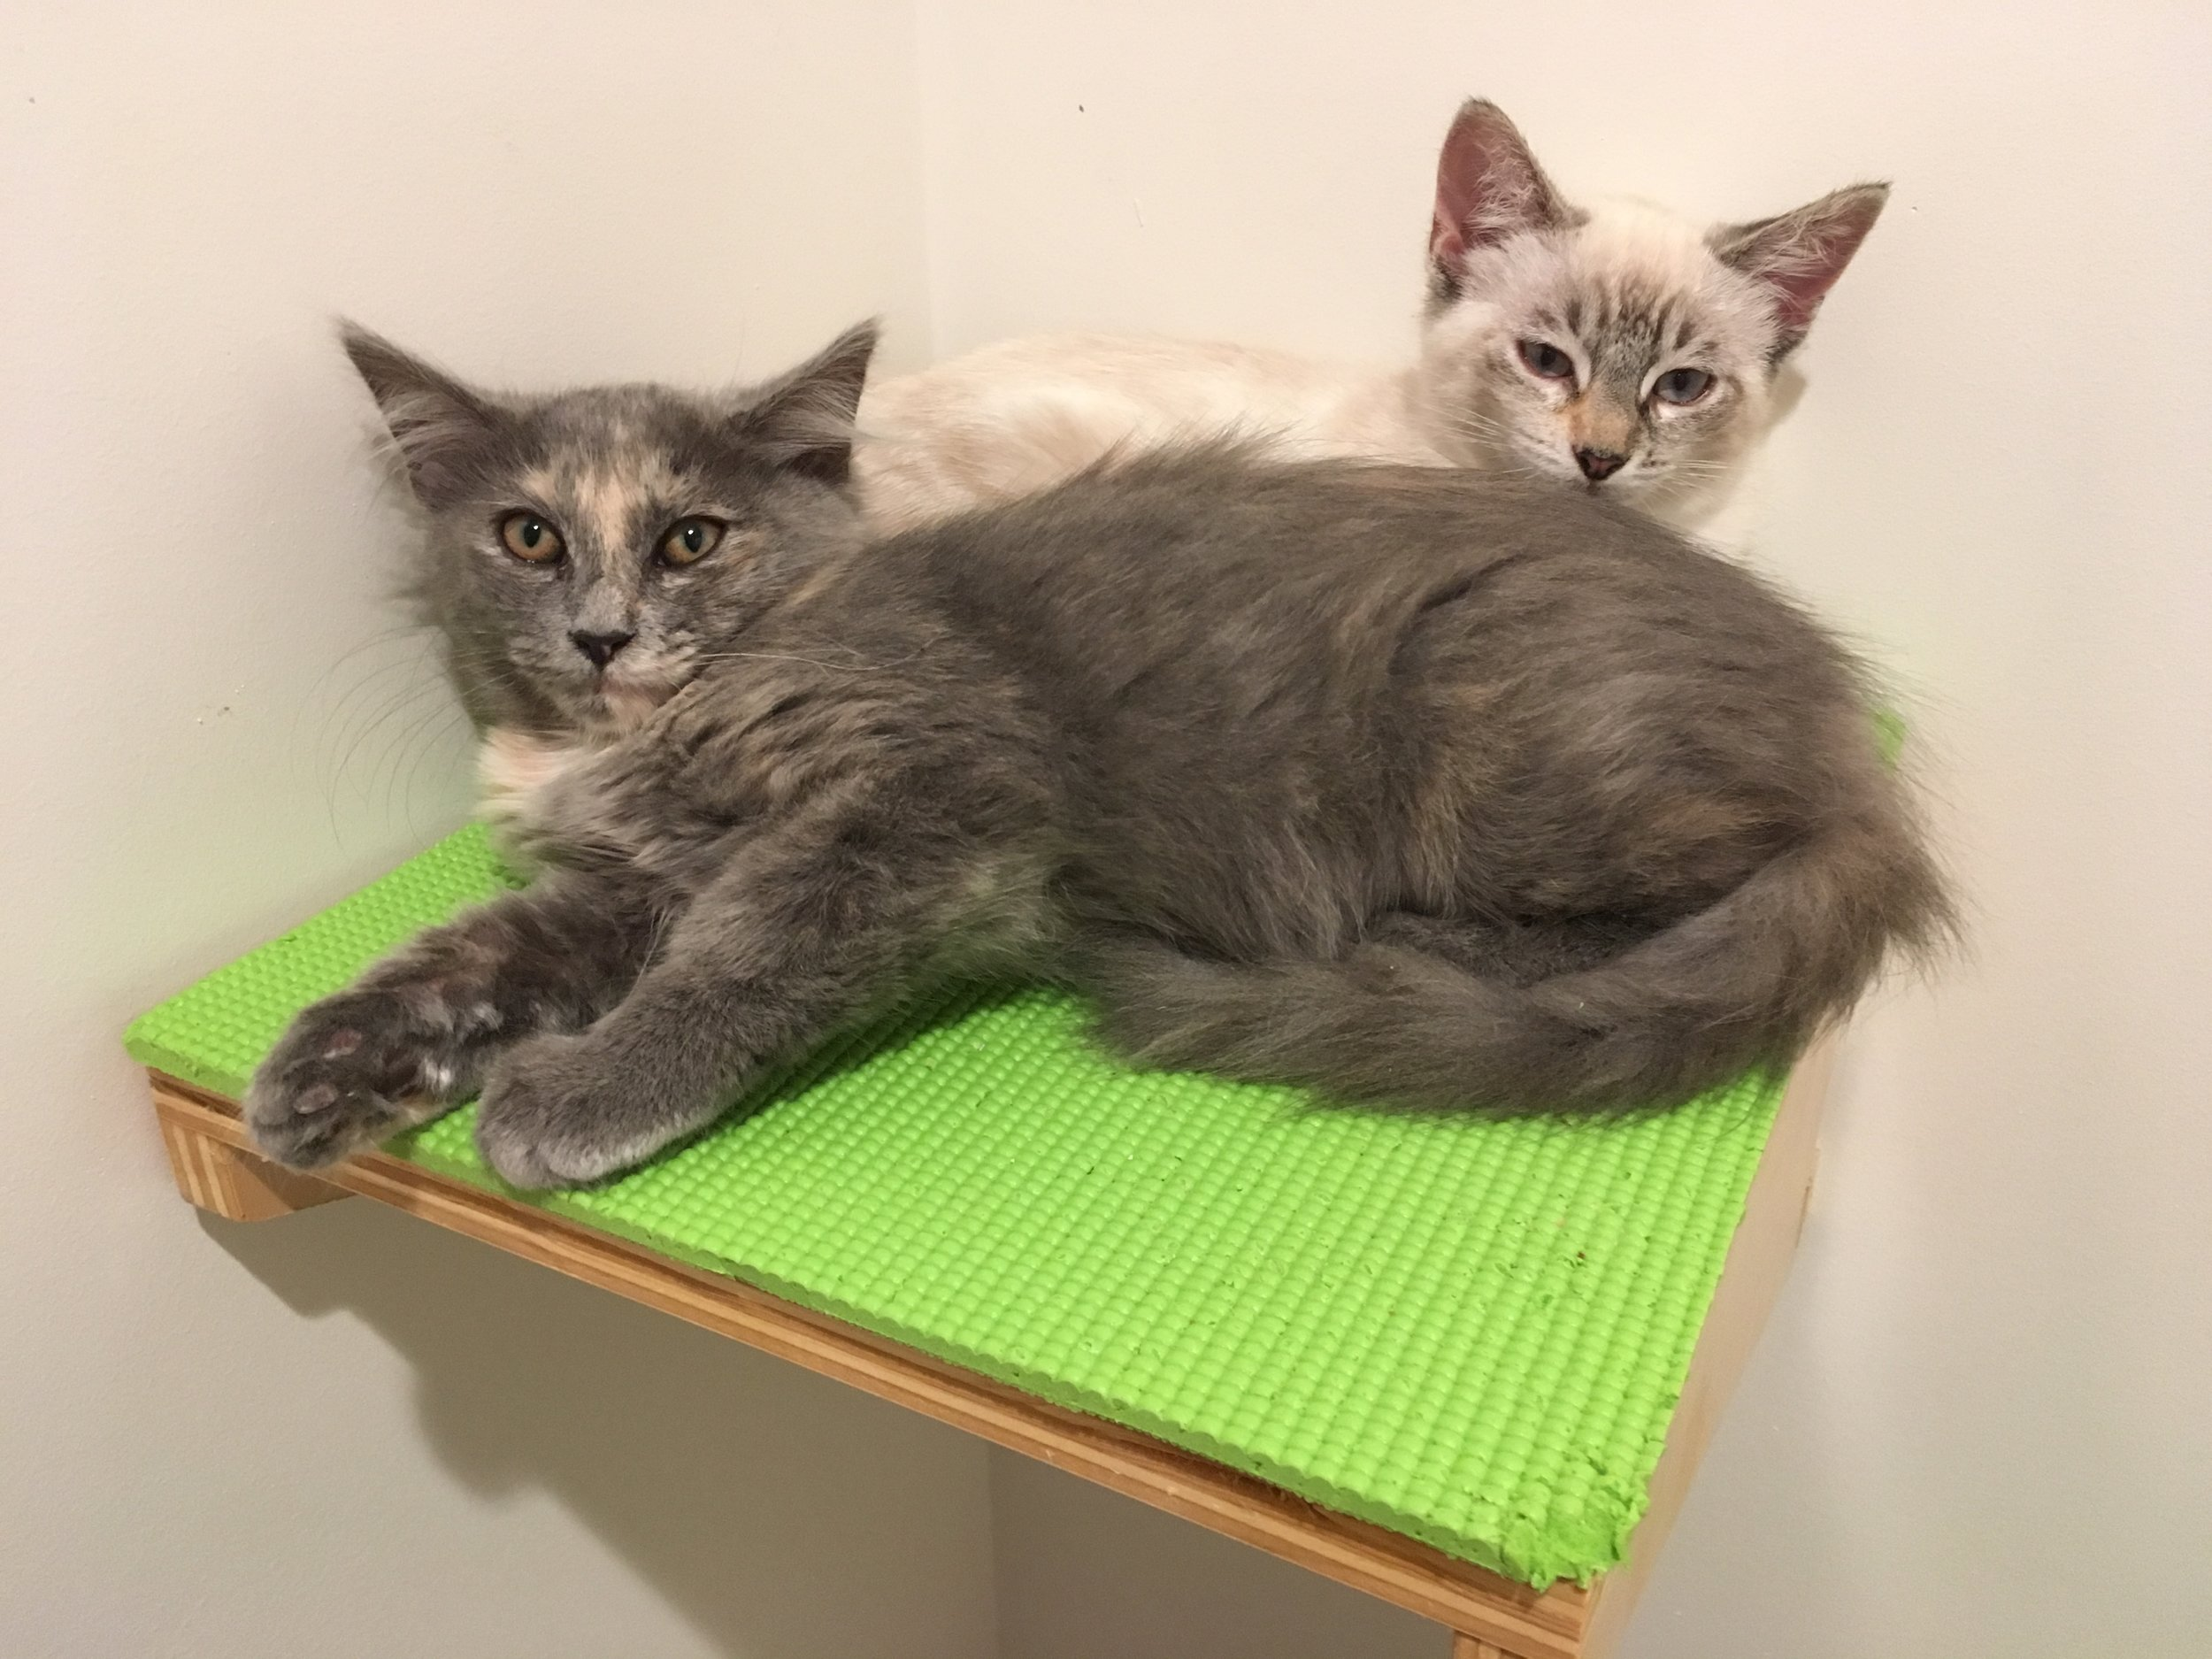 Leaf (front) and Aspen, cuddling in their studio before going home.